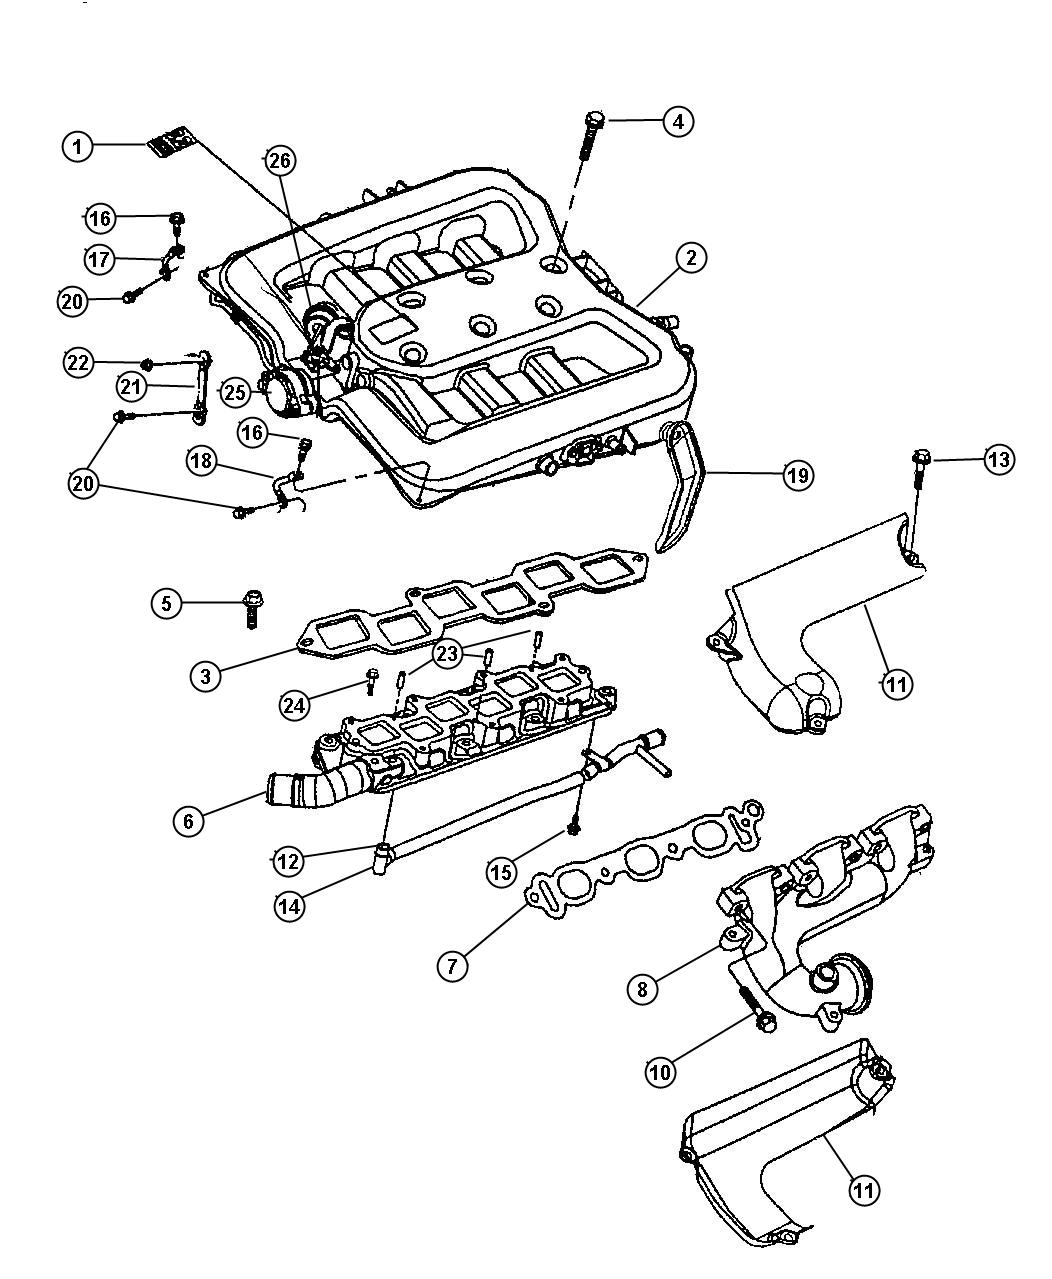 Service manual [Upper Intake 2001 Chrysler Lhs Replacement